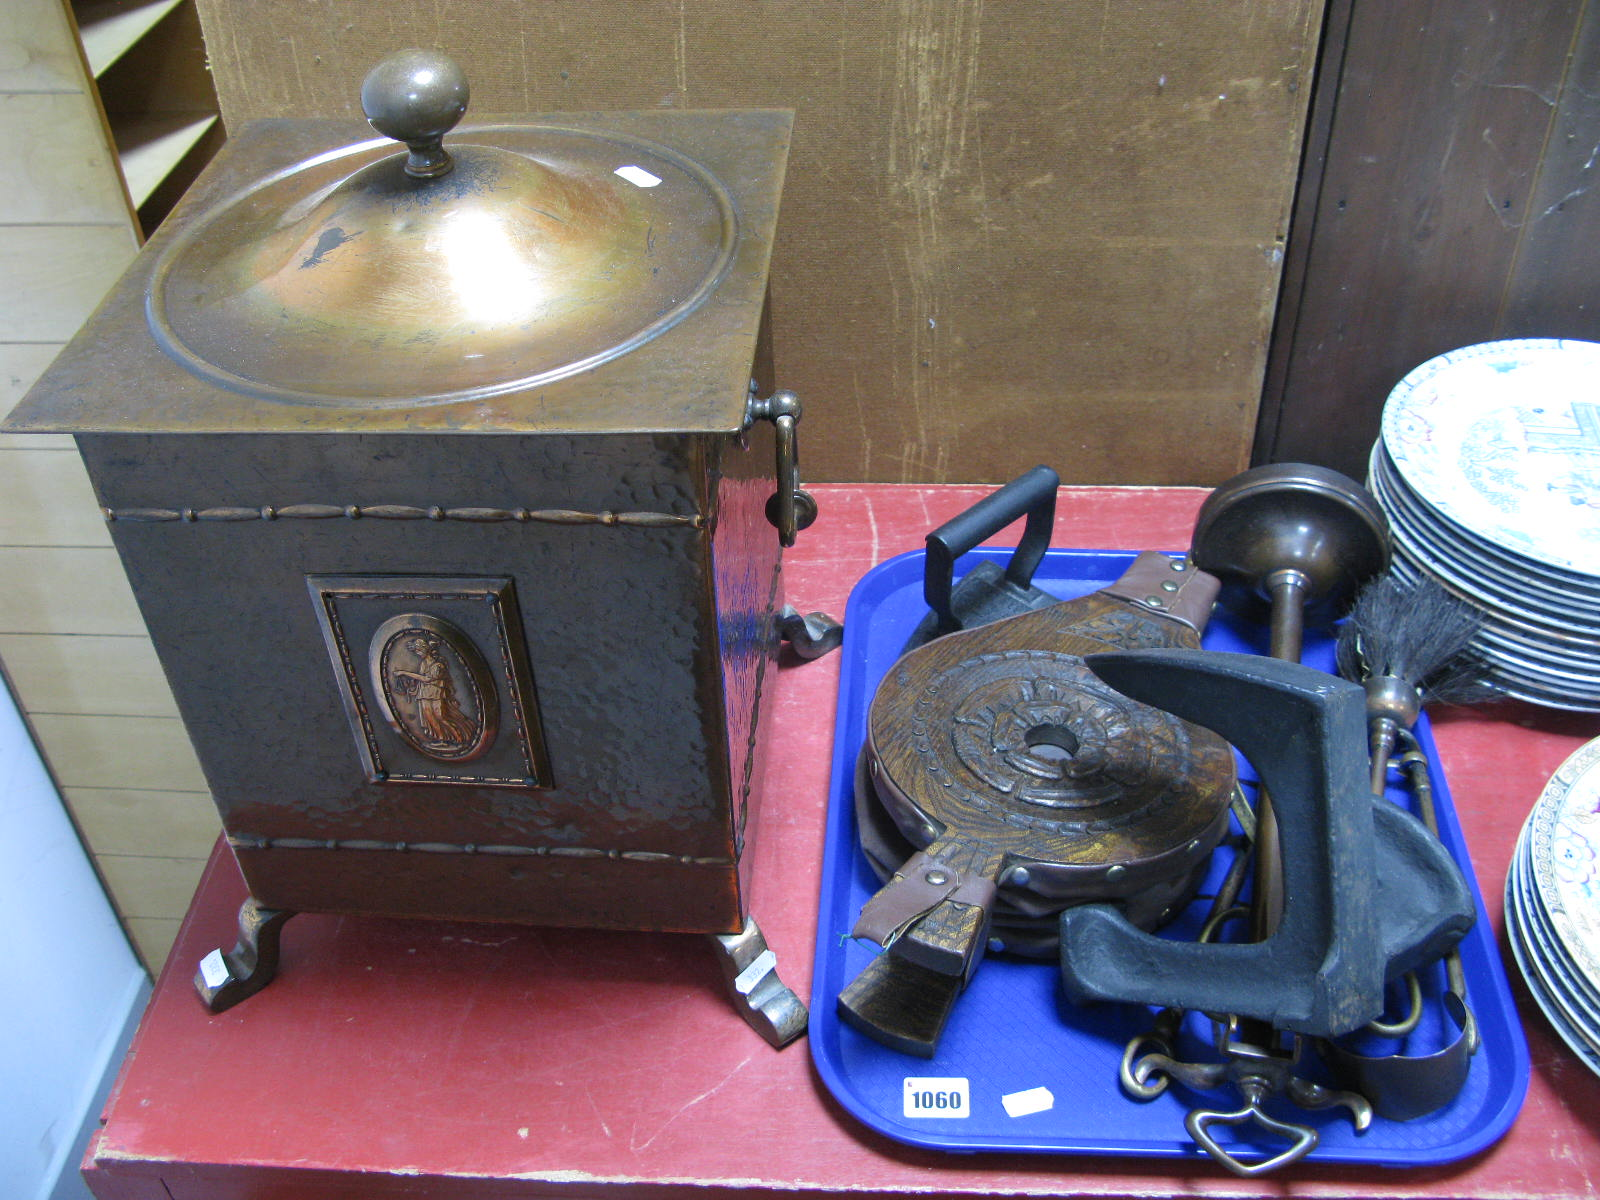 Lot 1060 - A Circa 1930's Oxidised Copper Coal Box, with planished finish, companion set, bellows, shoe last,